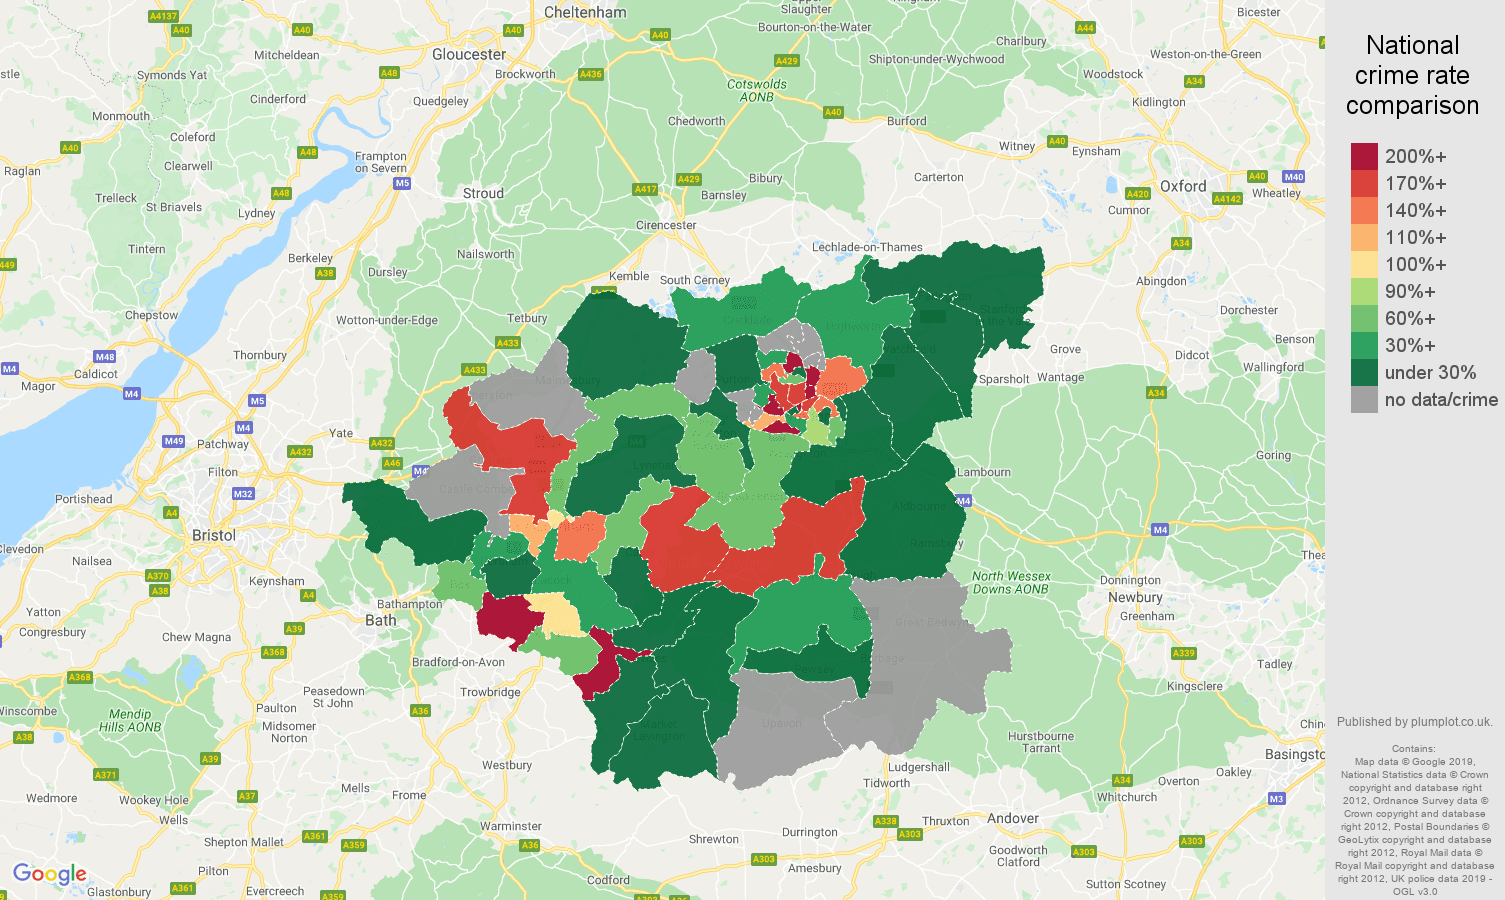 Swindon shoplifting crime rate comparison map